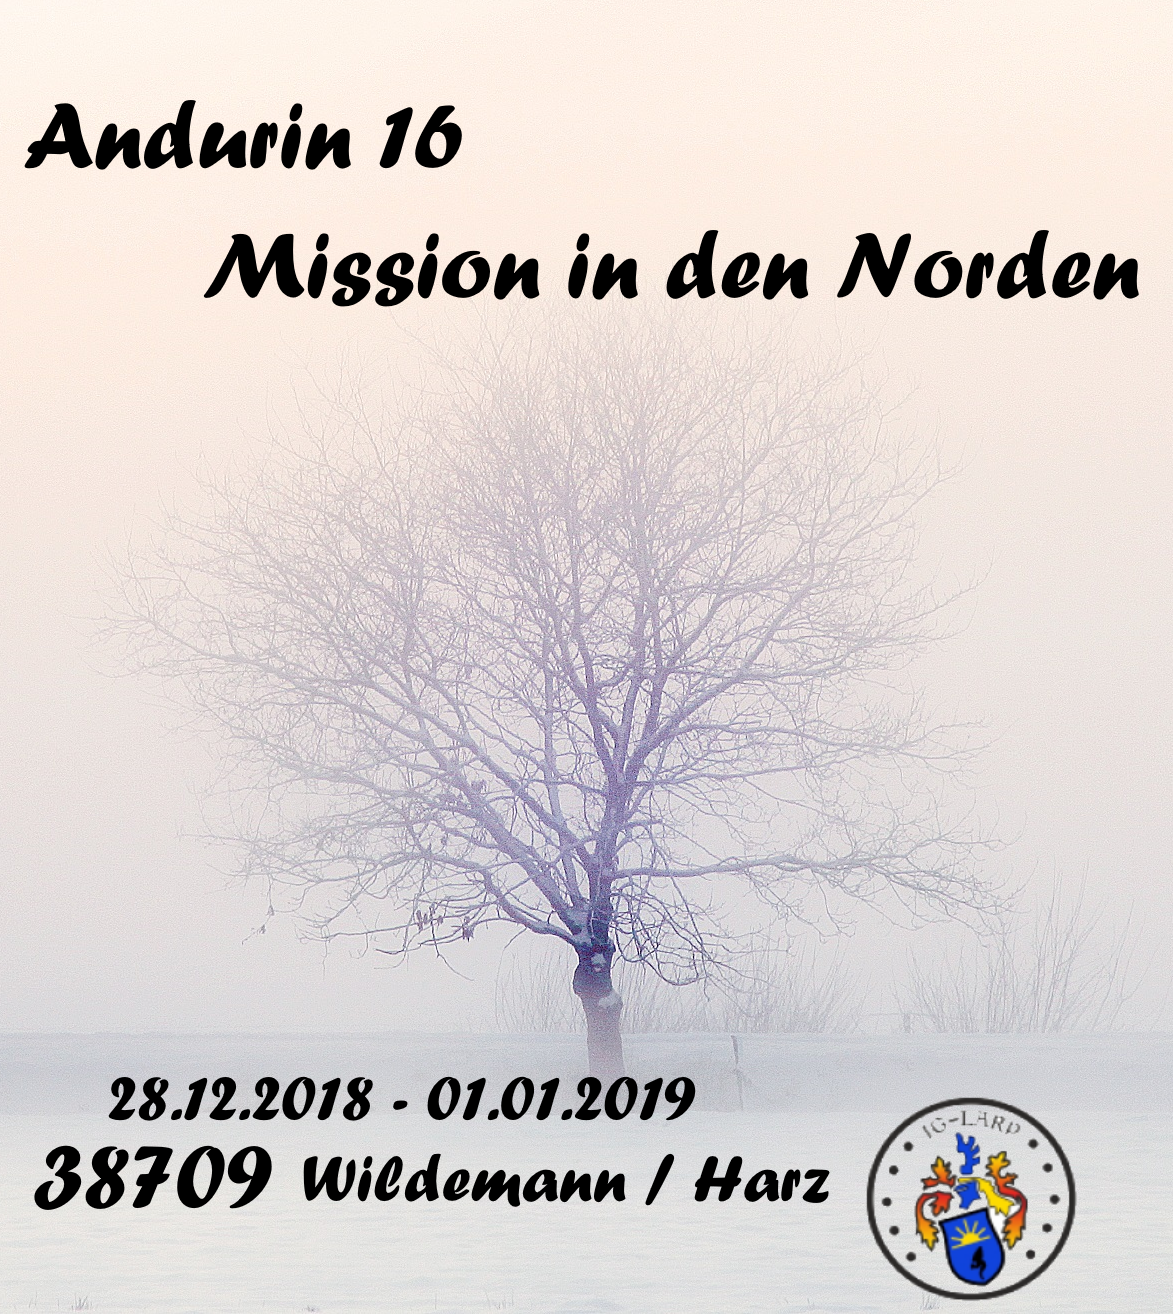 Andurin 16 - Mission in den Norden